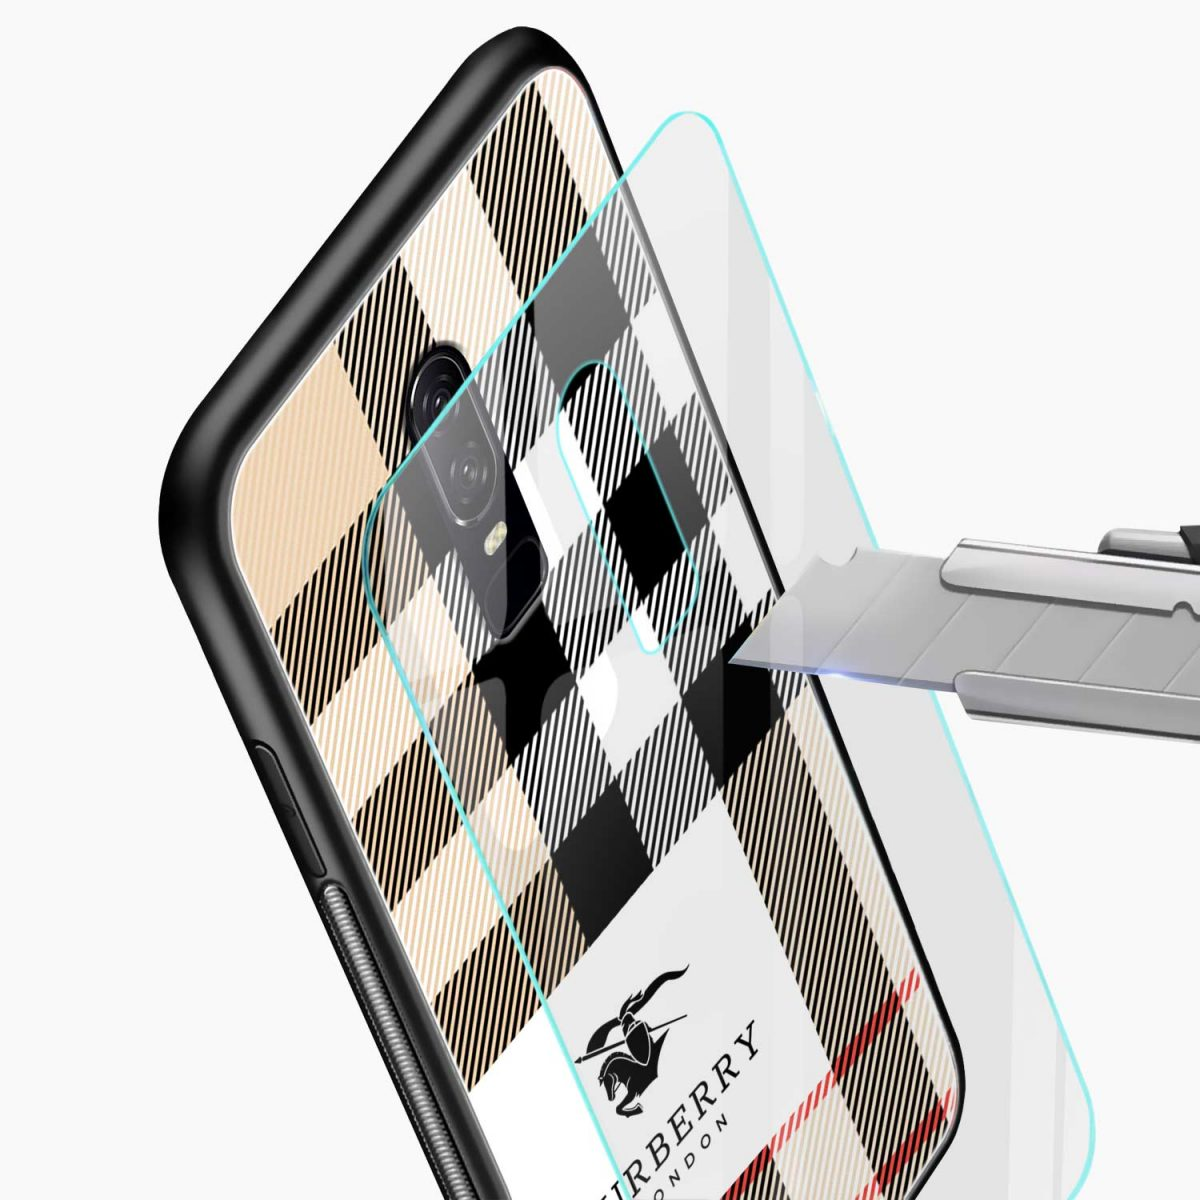 burberry cross lines pattern glass view oneplus 6 back cover